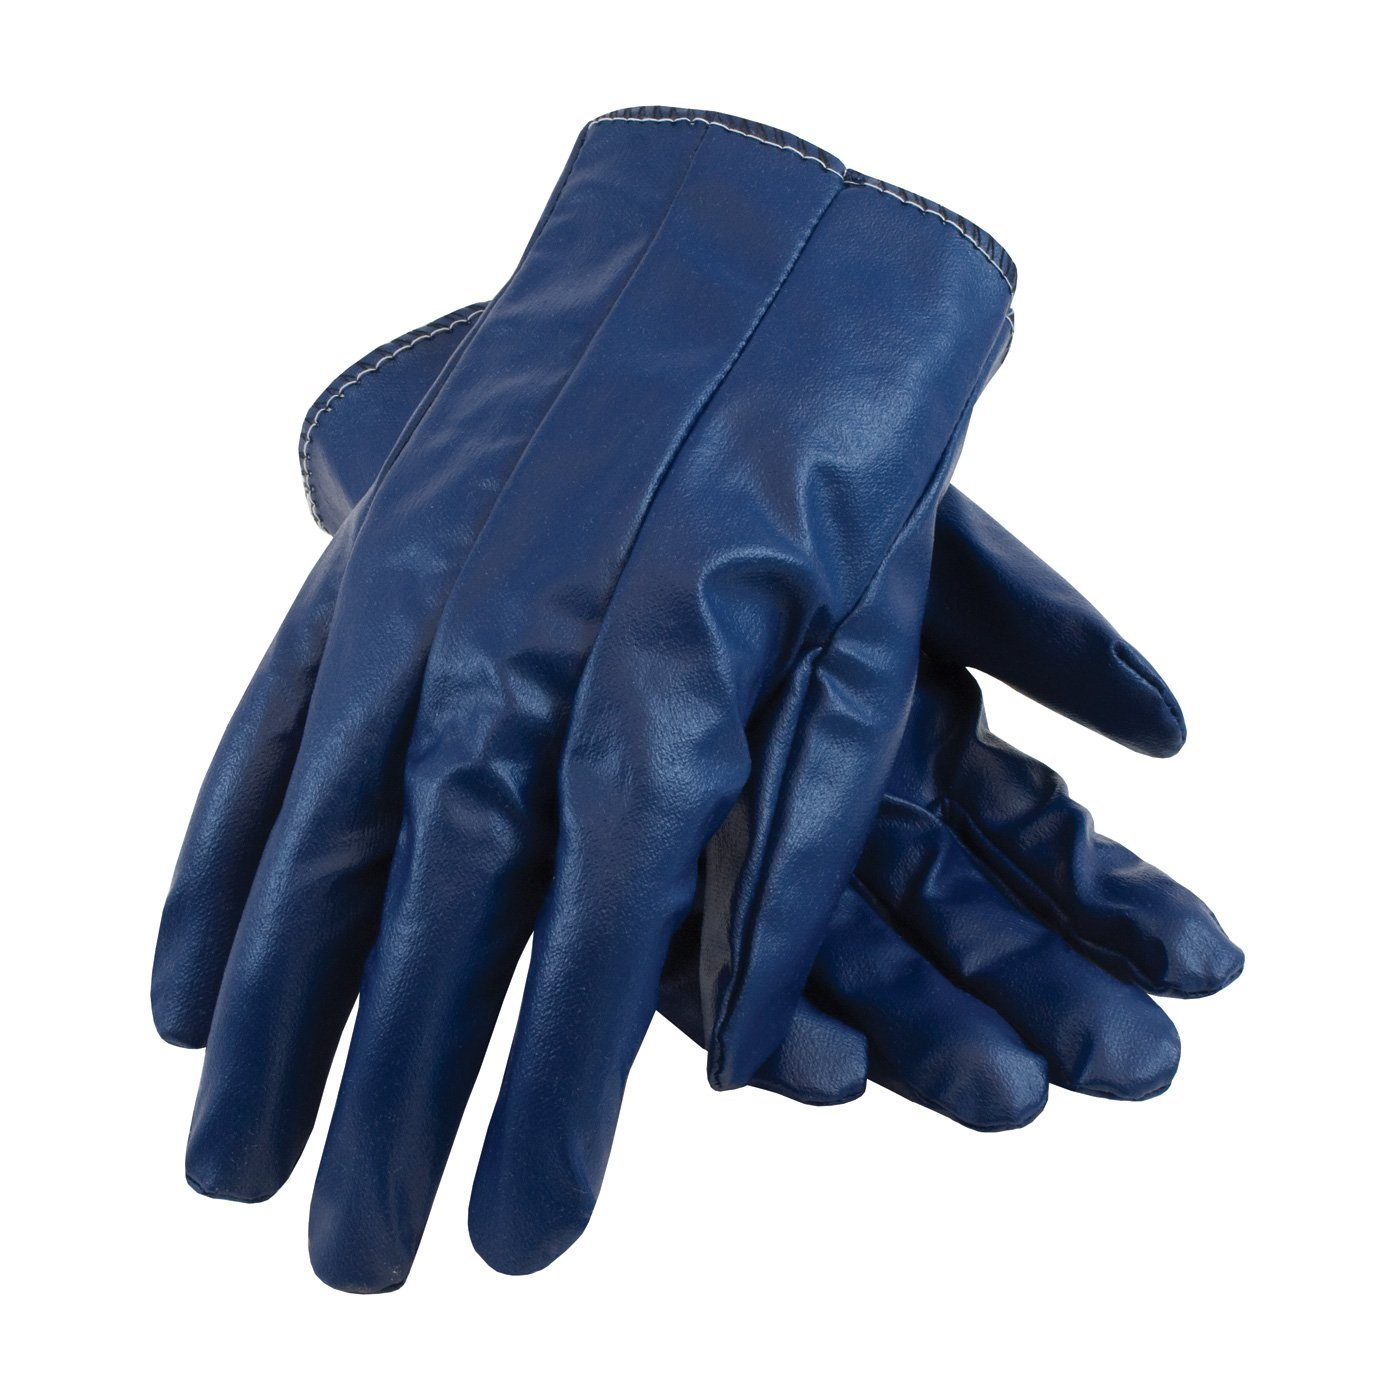 Excalibur 60-3106/L Nitrile Coated Cotton Glove with Fully Laminated Back, Ladies'